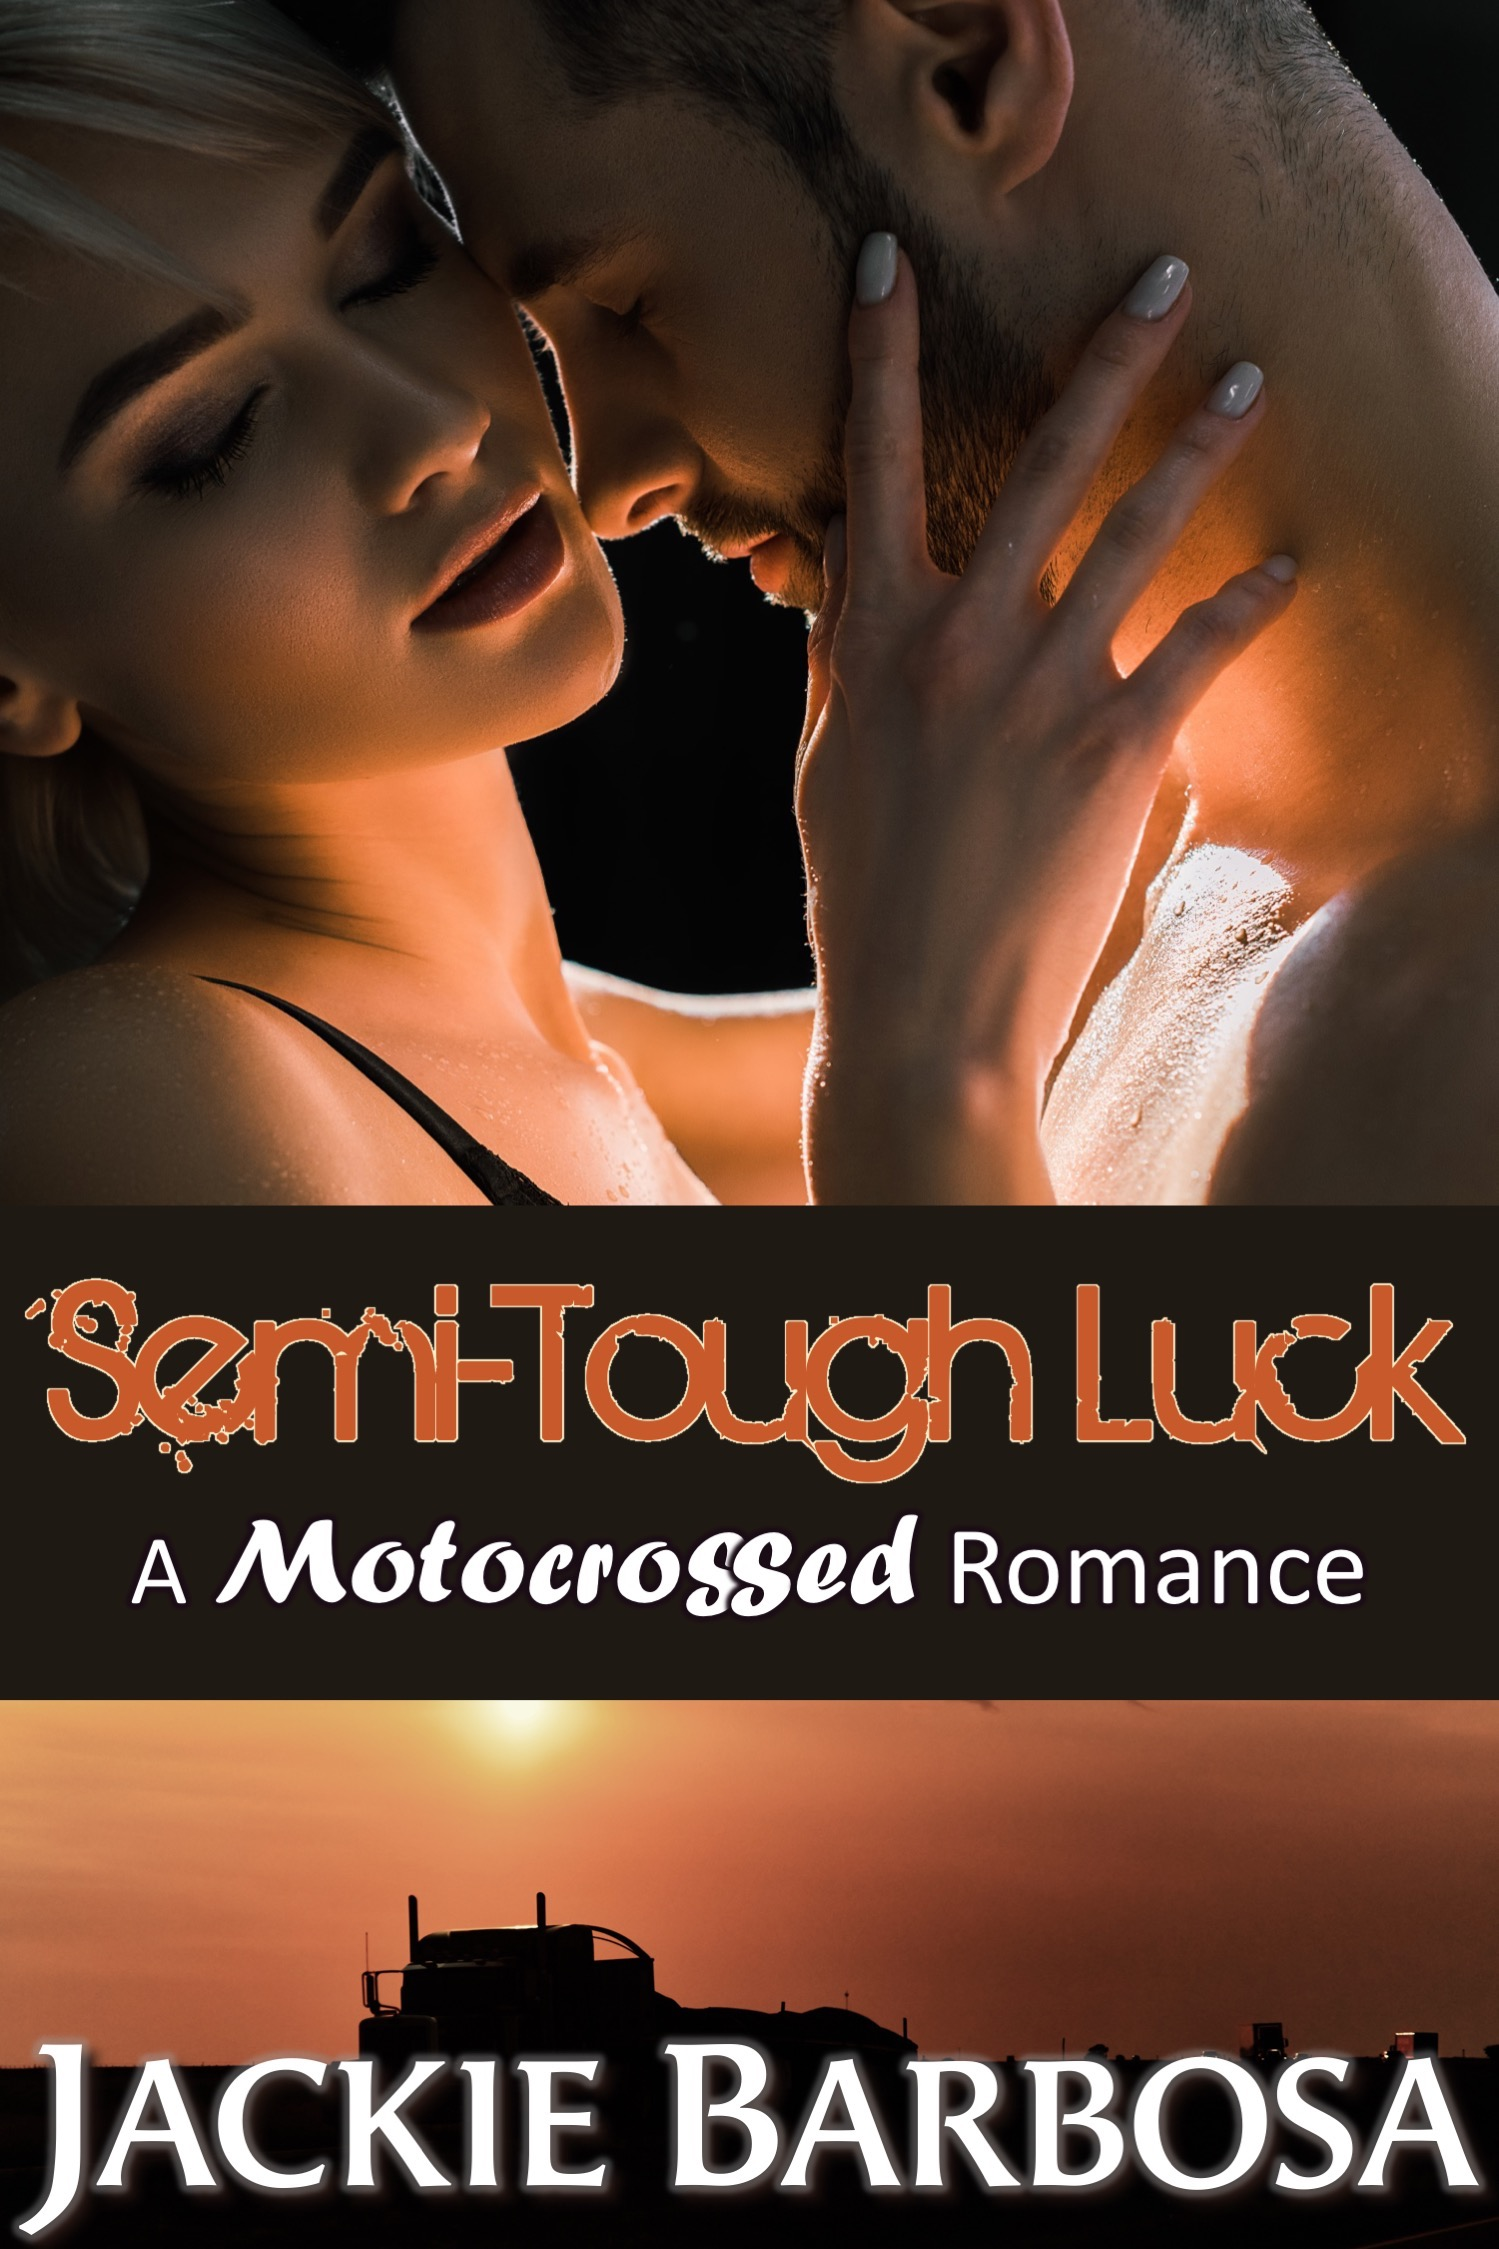 Semi-Tough Luck by Jackie Barbosa